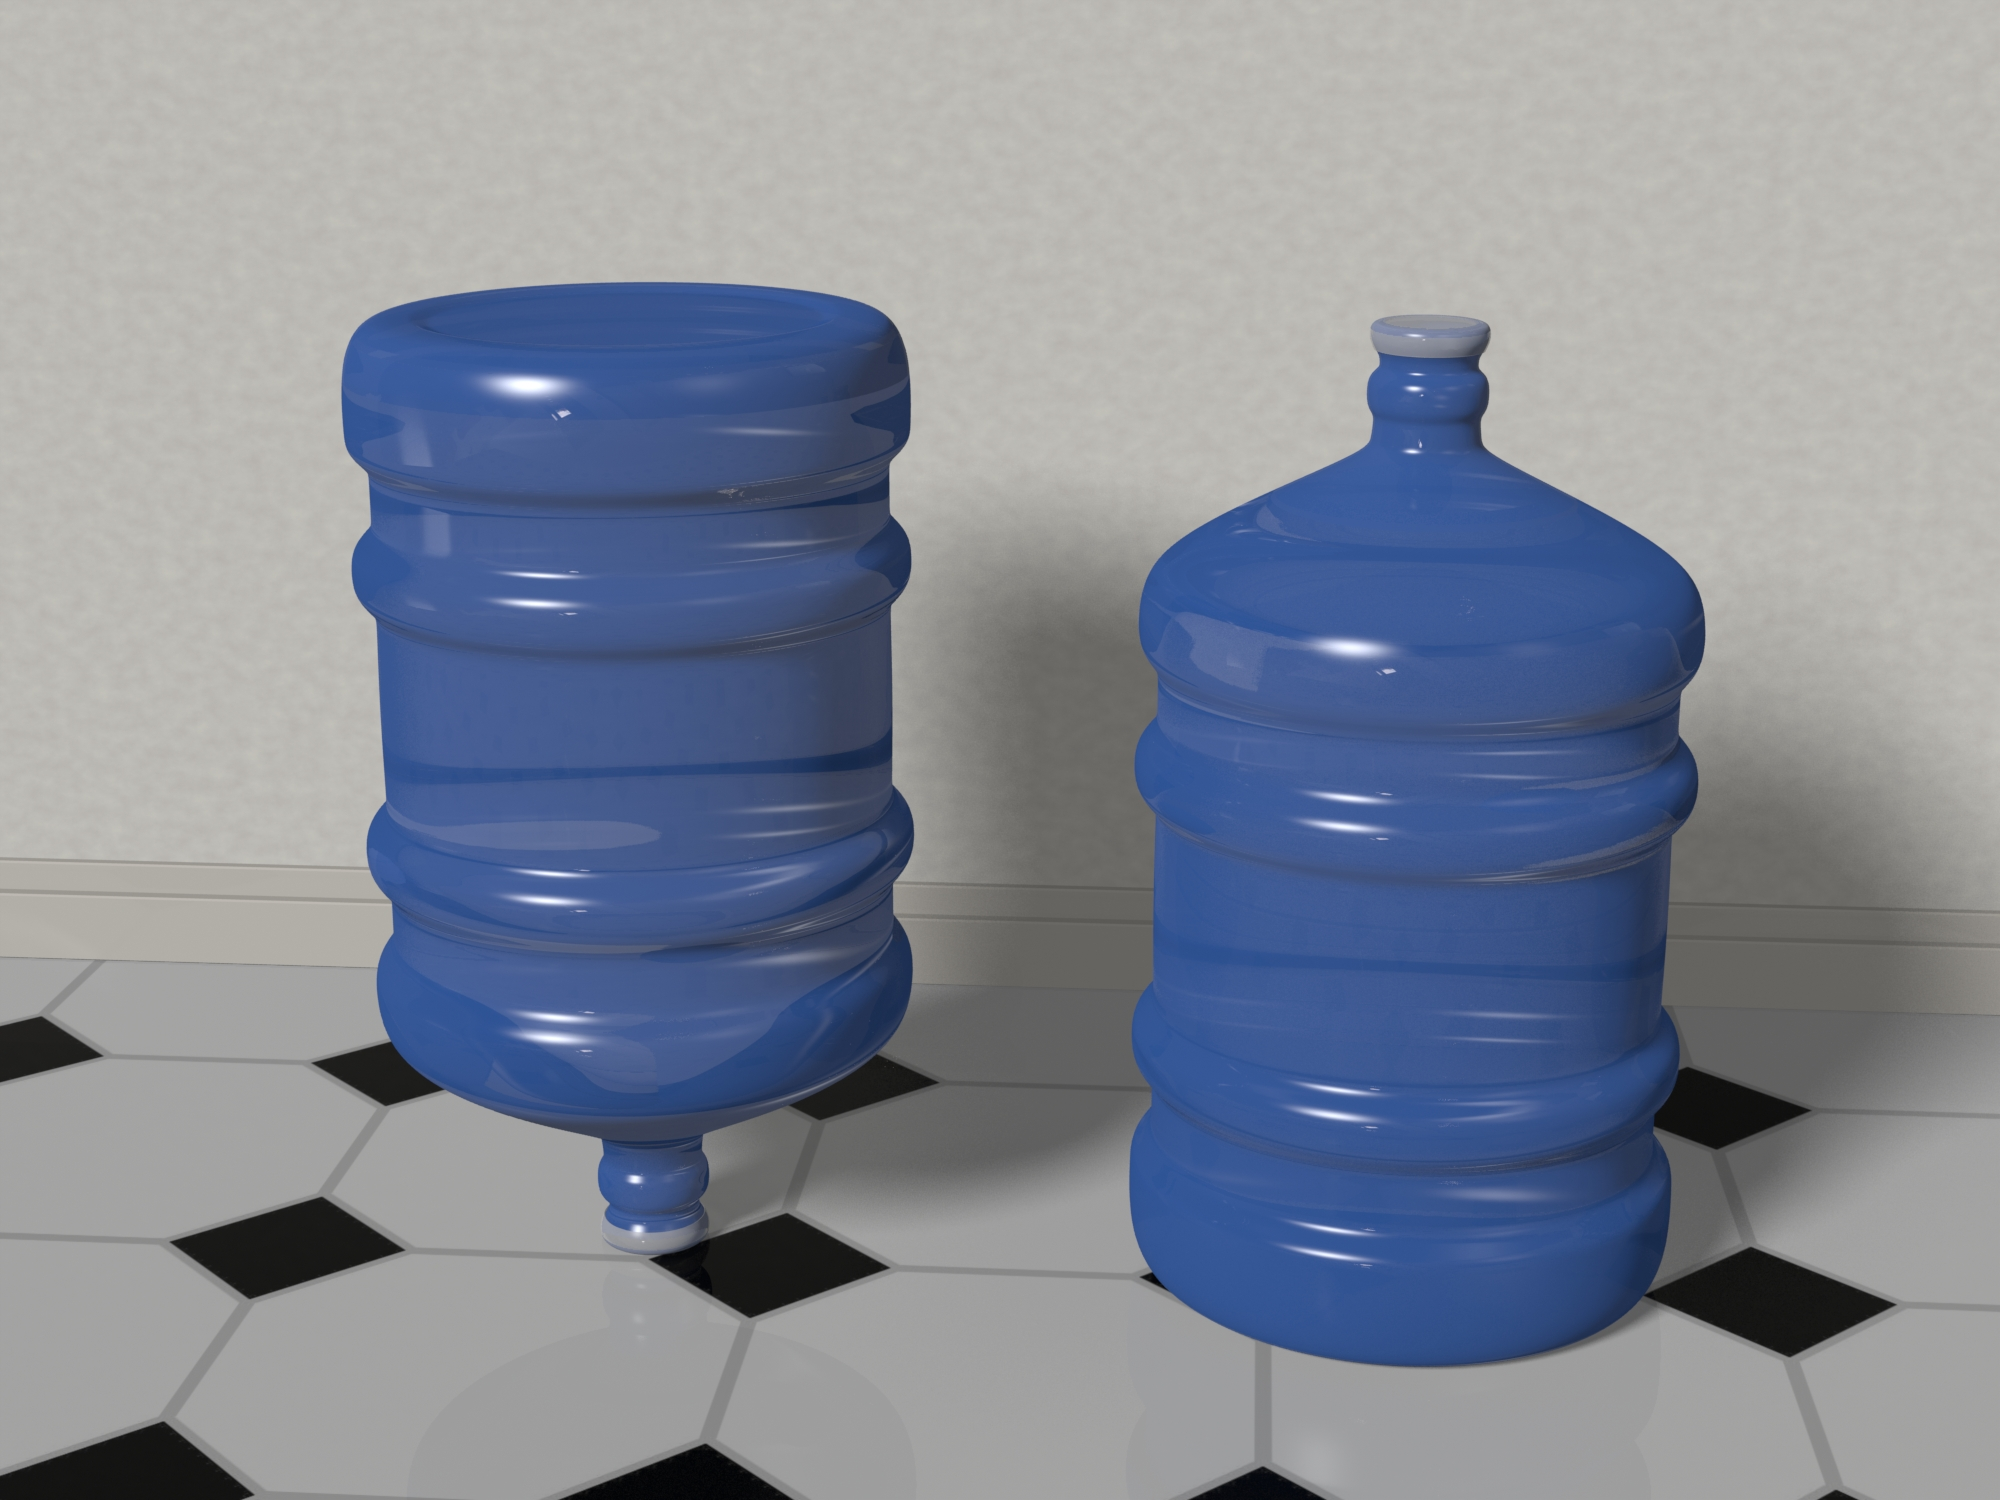 water bottle 5 gallons 3d model max fbx c4d jpeg jpg lxo  obj 268045